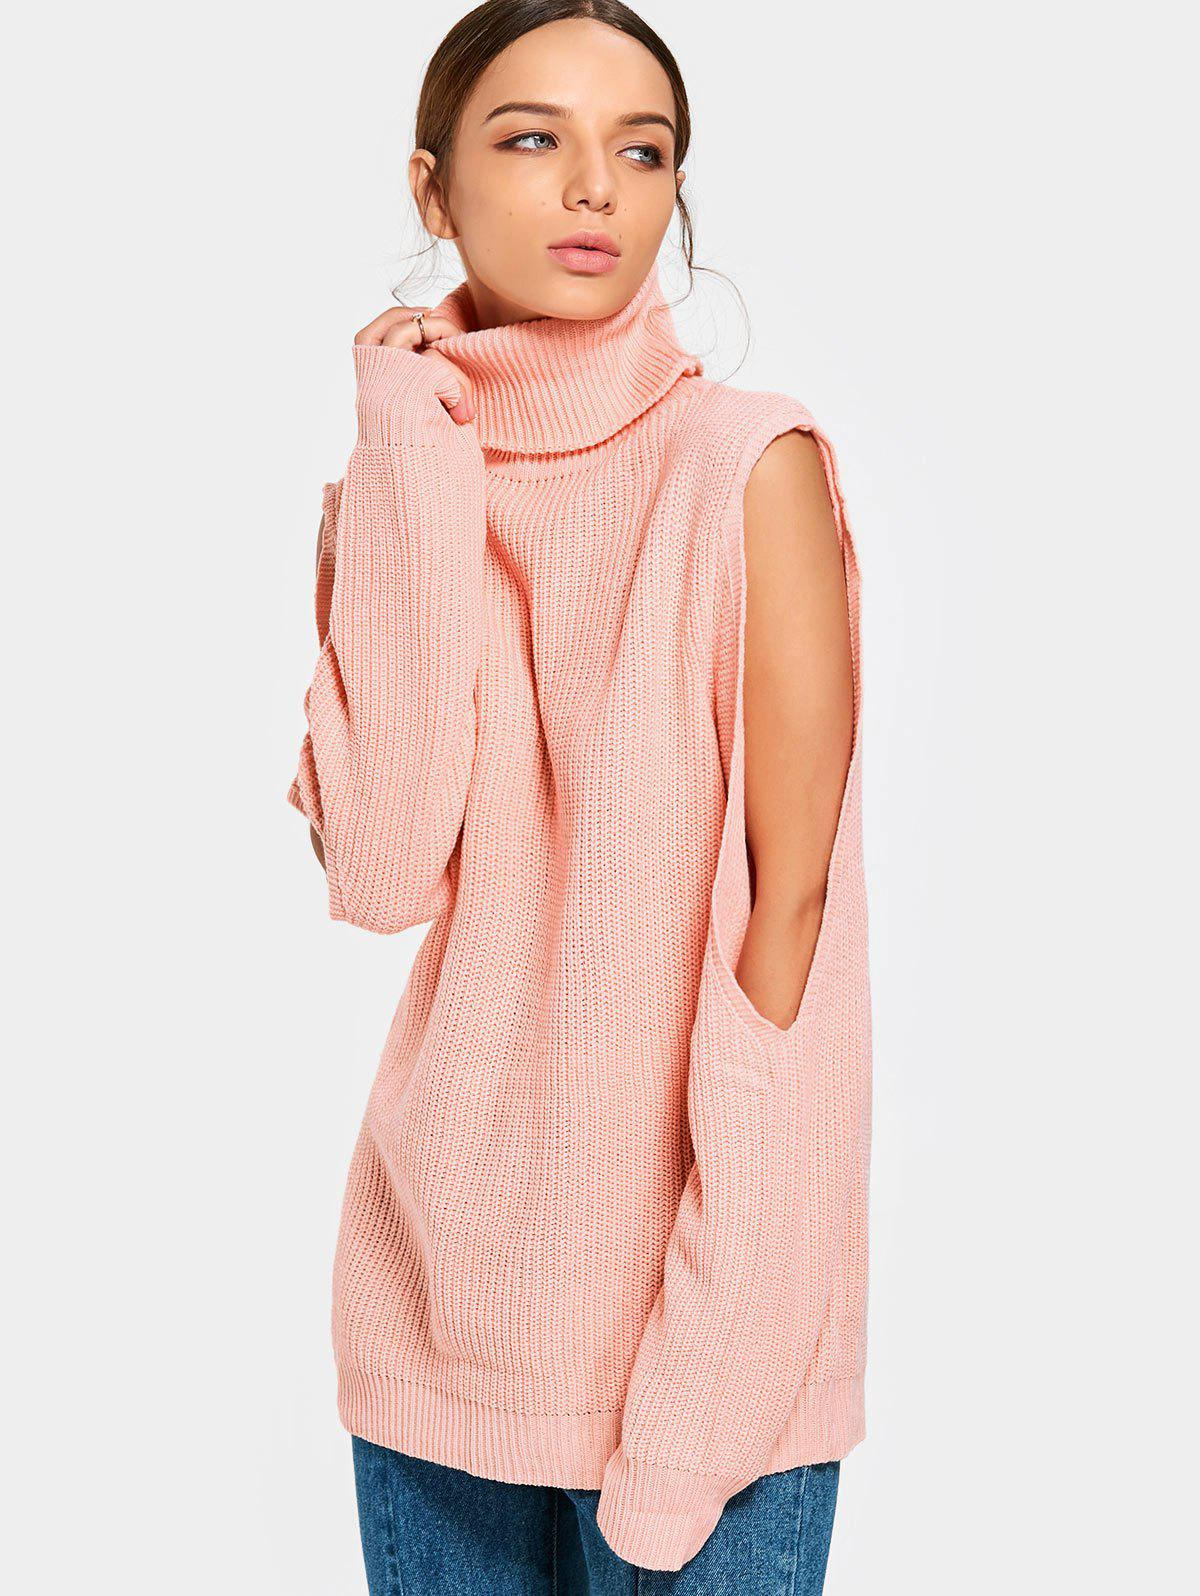 Cut Out Sleeve Turtleneck Sweater 224857001